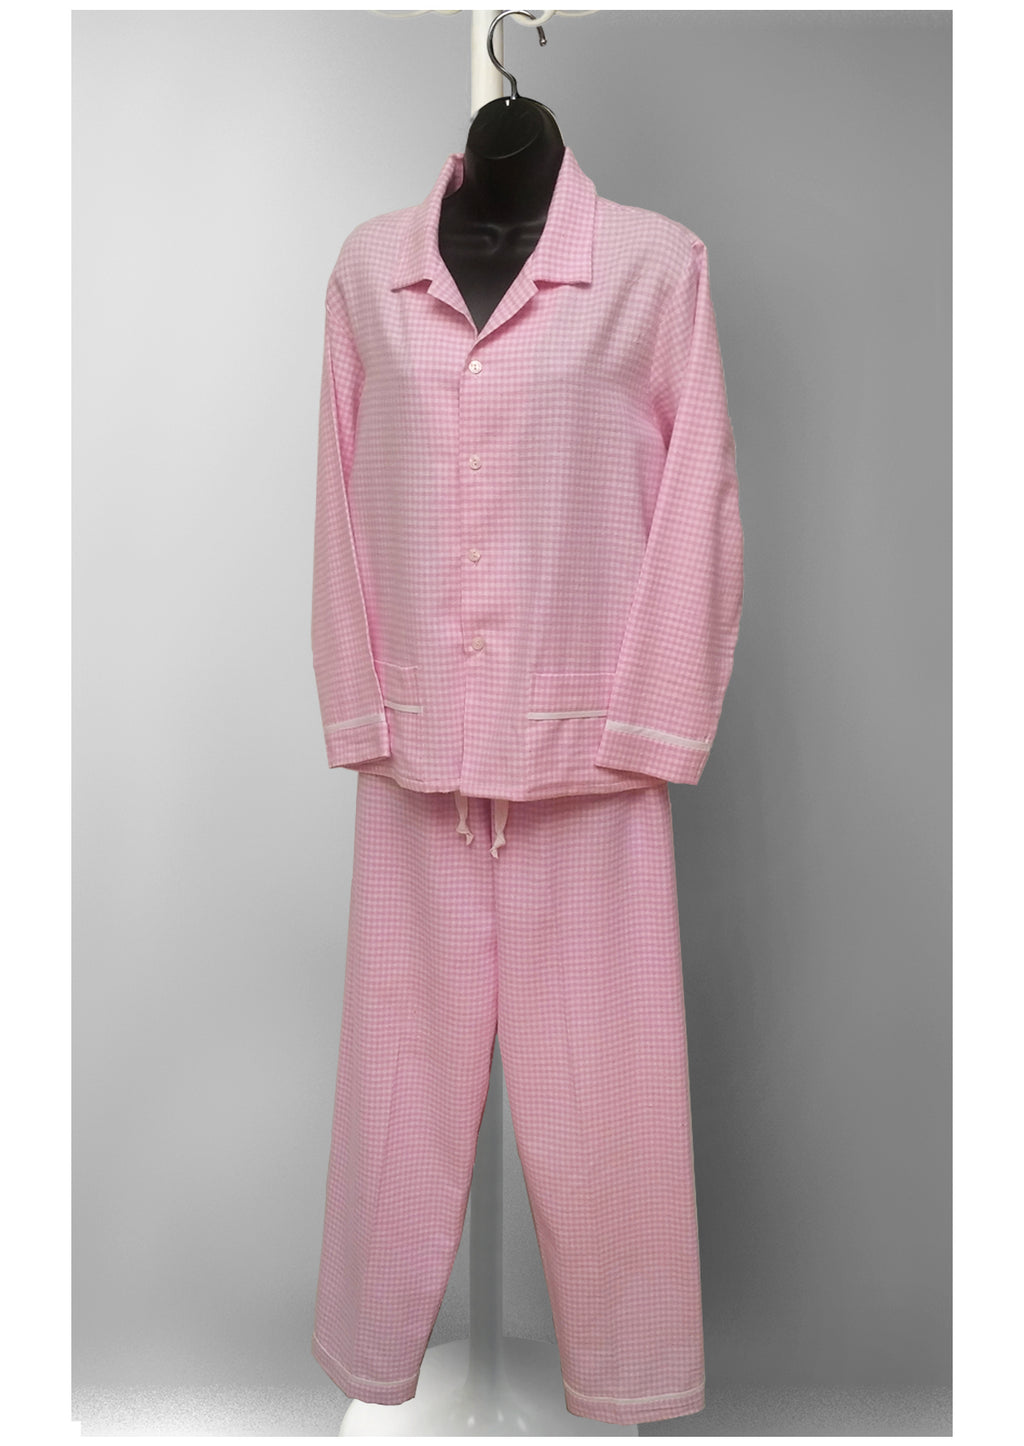 39905 Flannel plaid & flower print Classic PJ Set - (PINK CHECK SOLD-OUT)